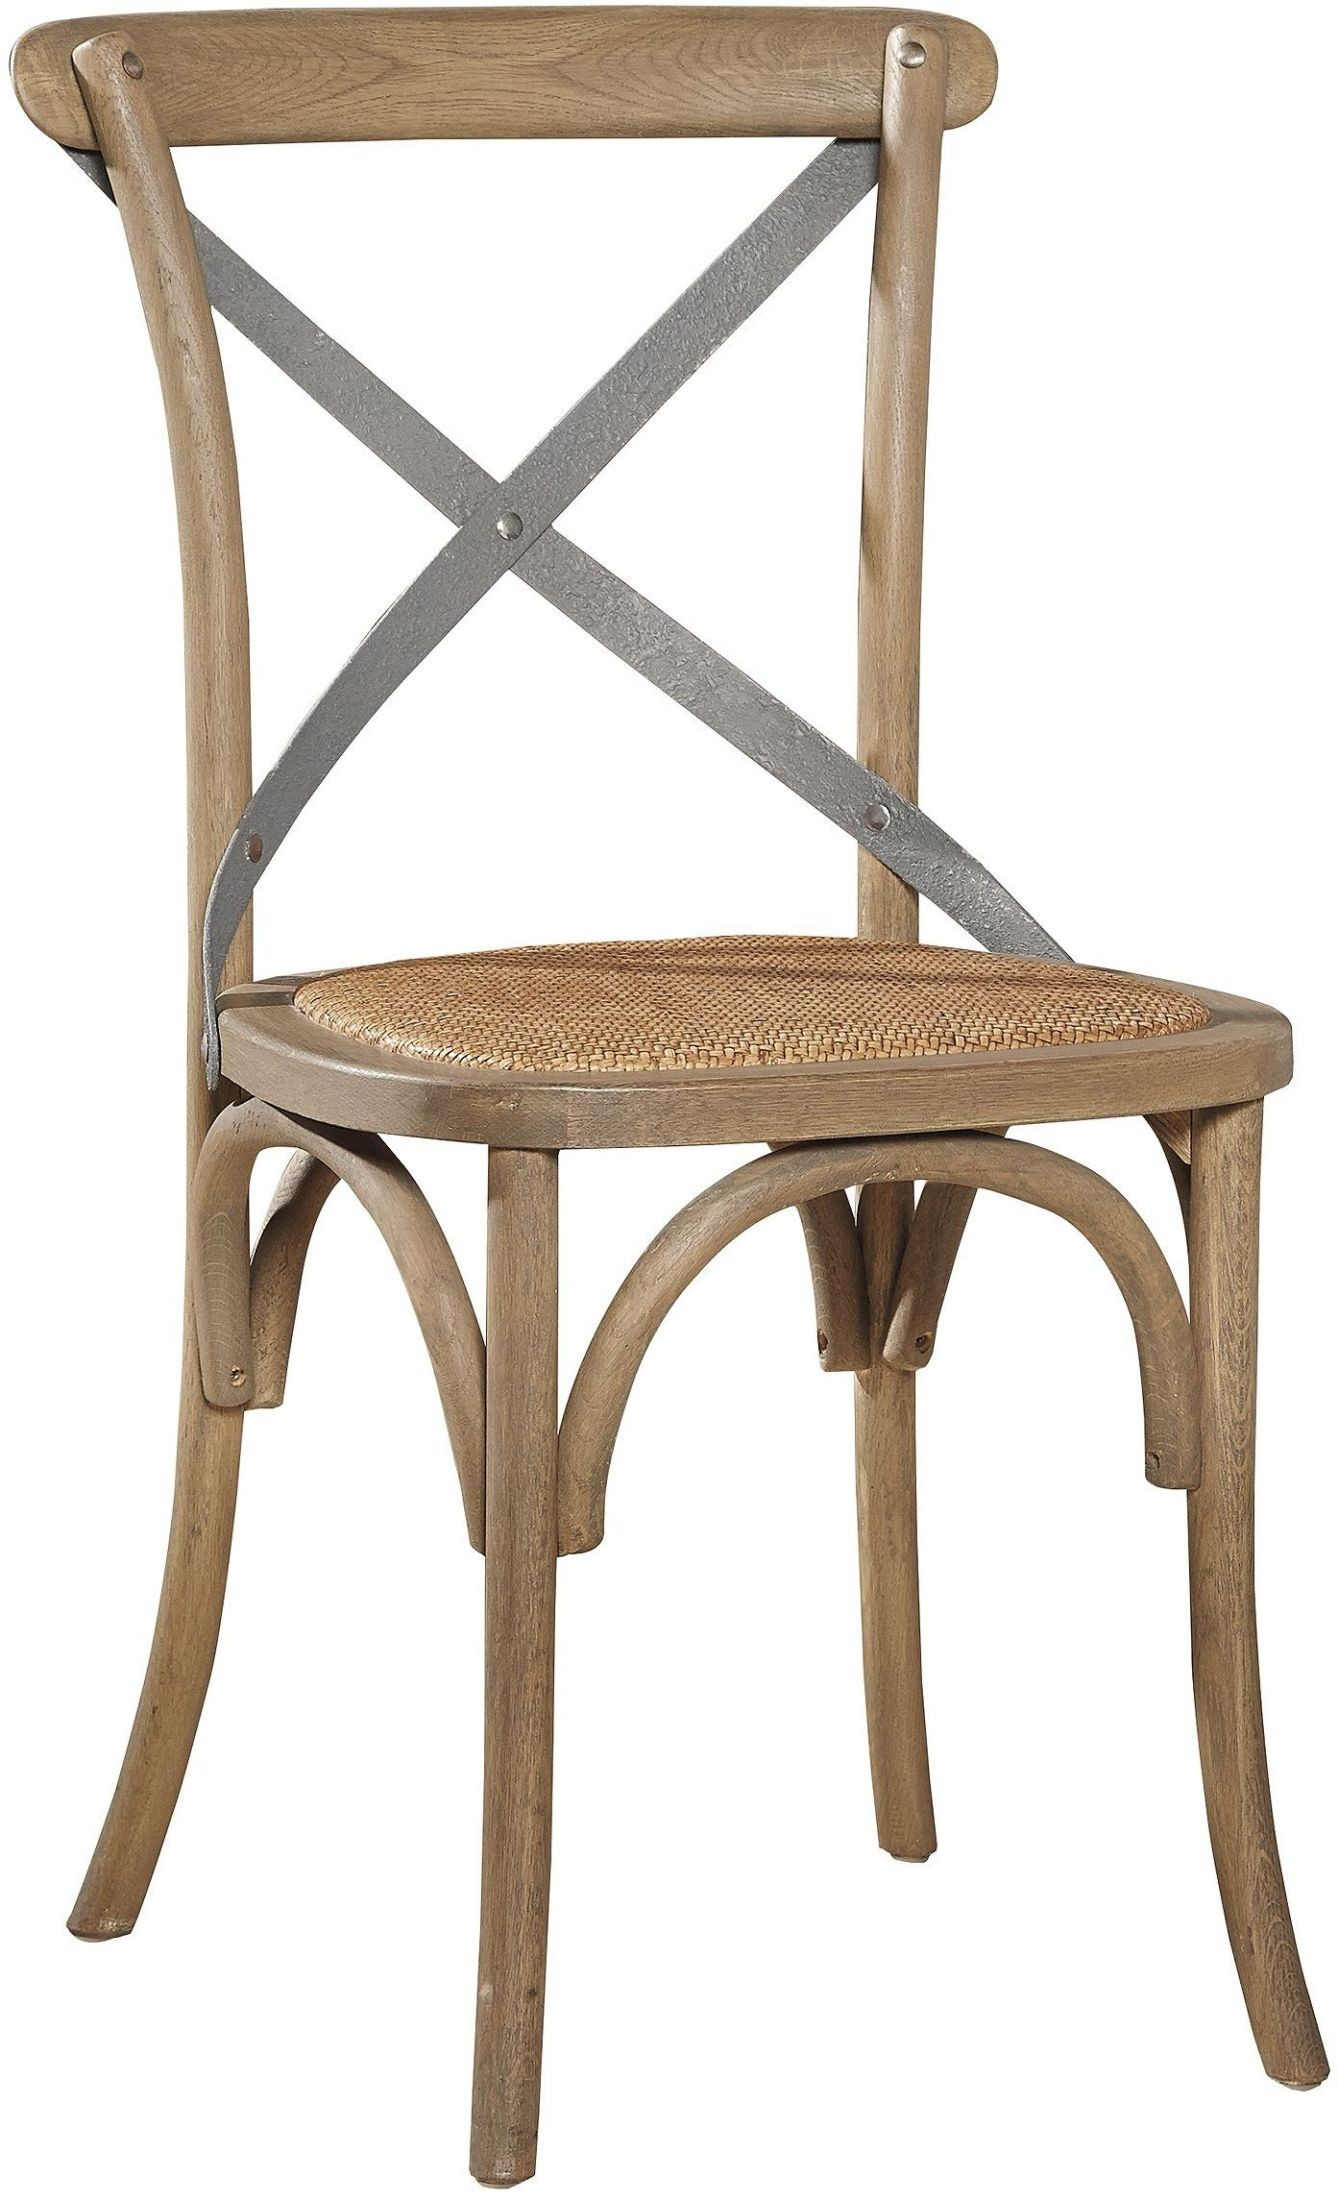 Driftwood Chair Bentwood Driftwood Side Chair Set Of 2 From Furniture